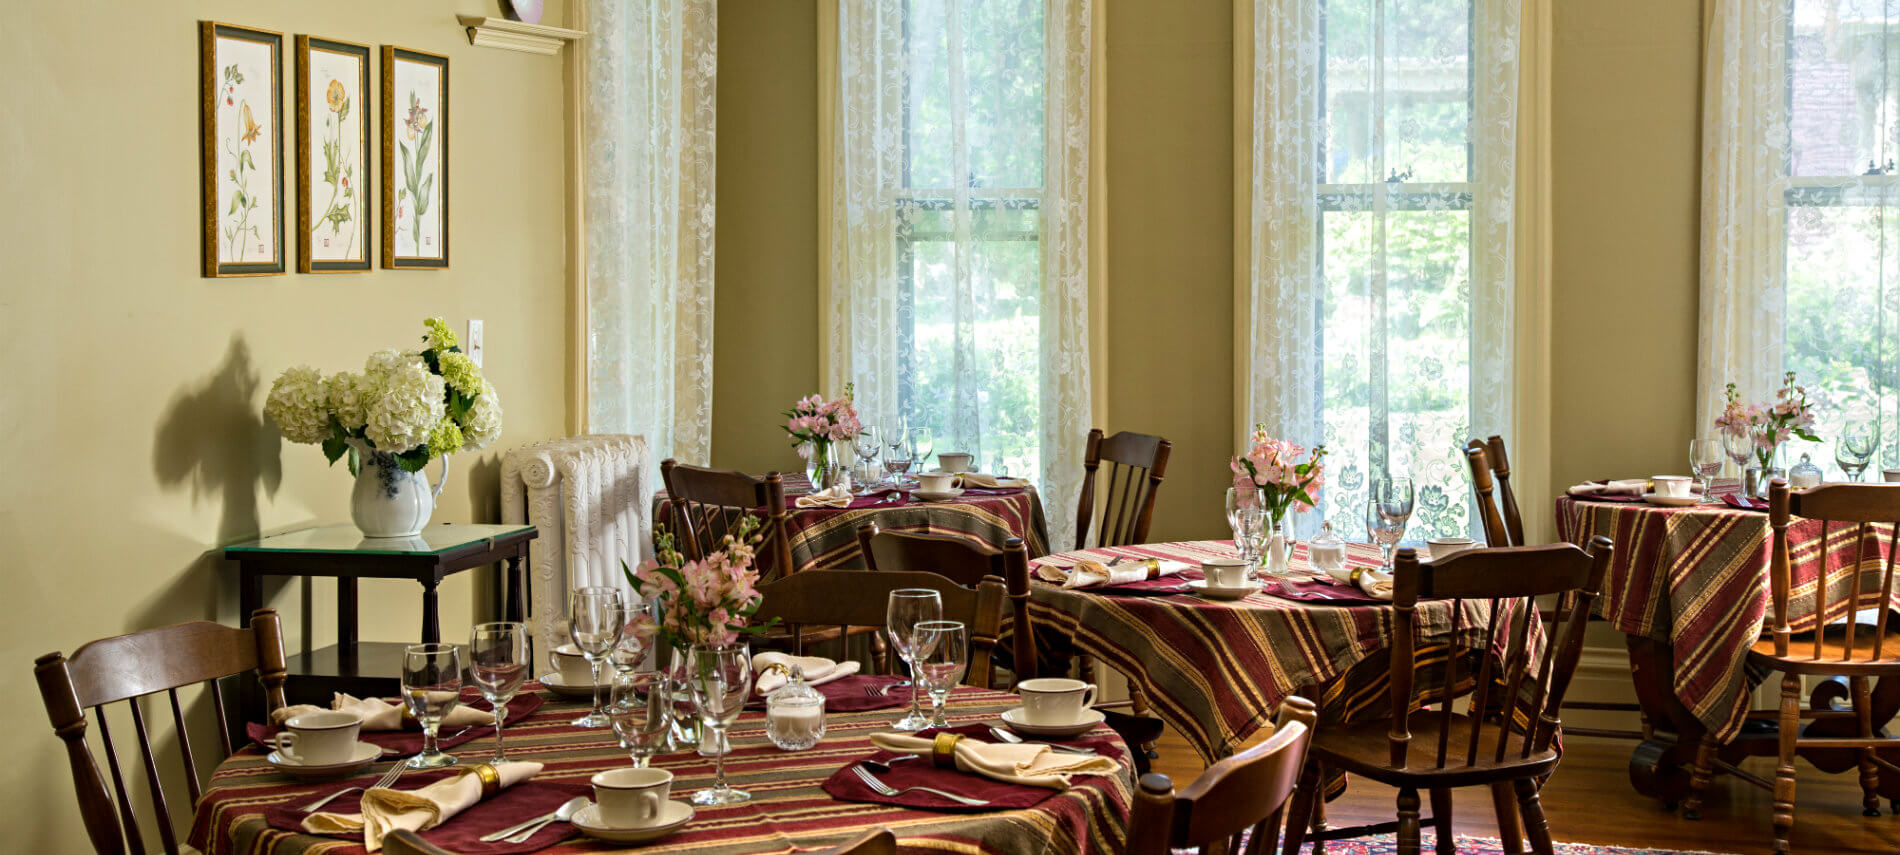 Bright dining room with wooden tables set with striped cloths and glassware for breakfast.